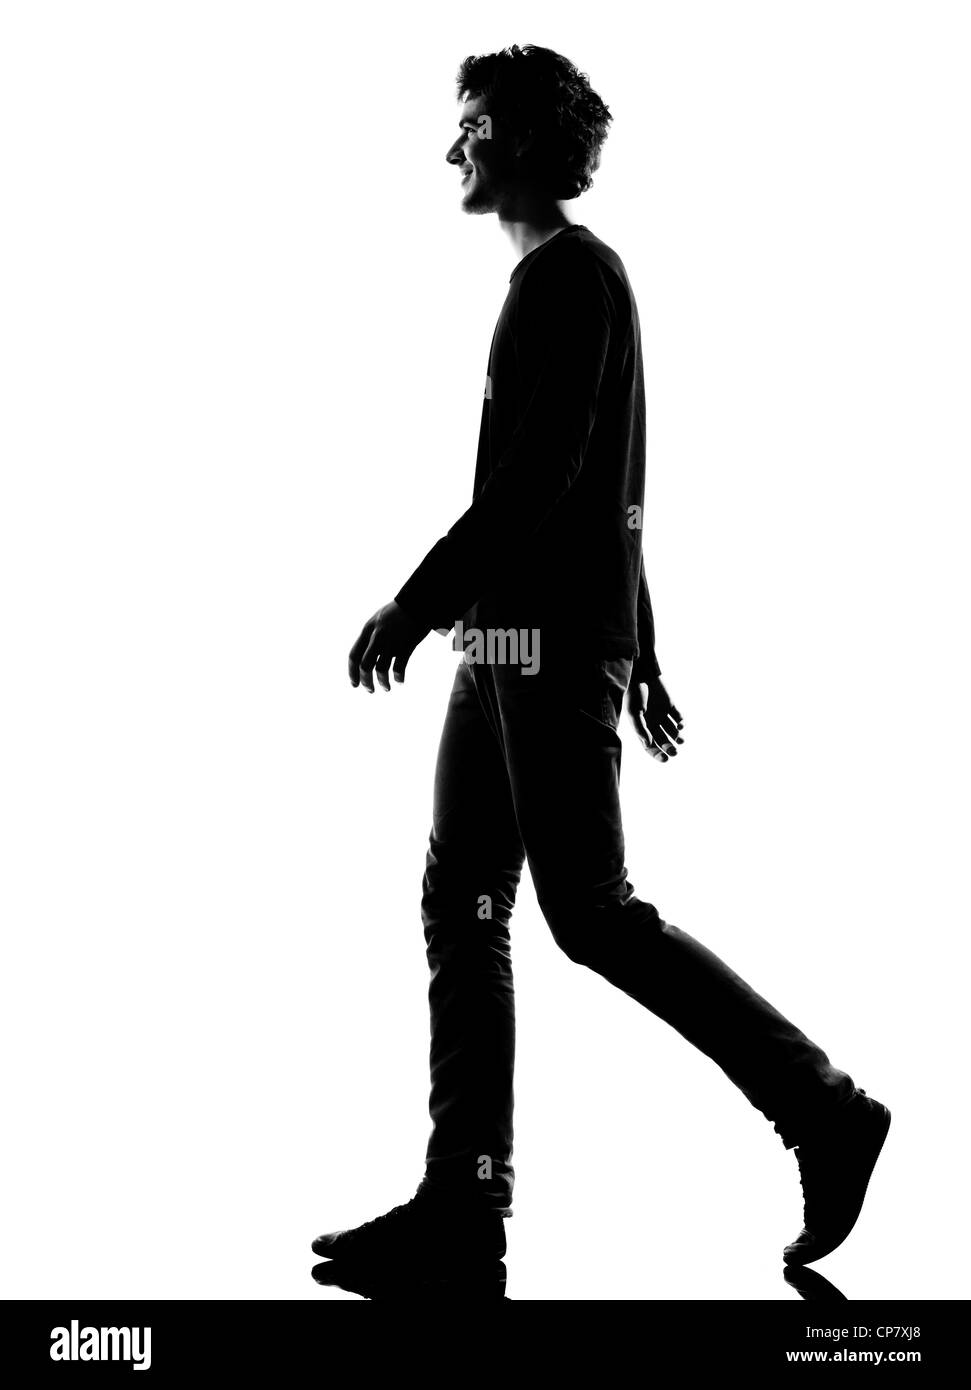 young man smiling walking silhouette in studio isolated on white background - Stock Image